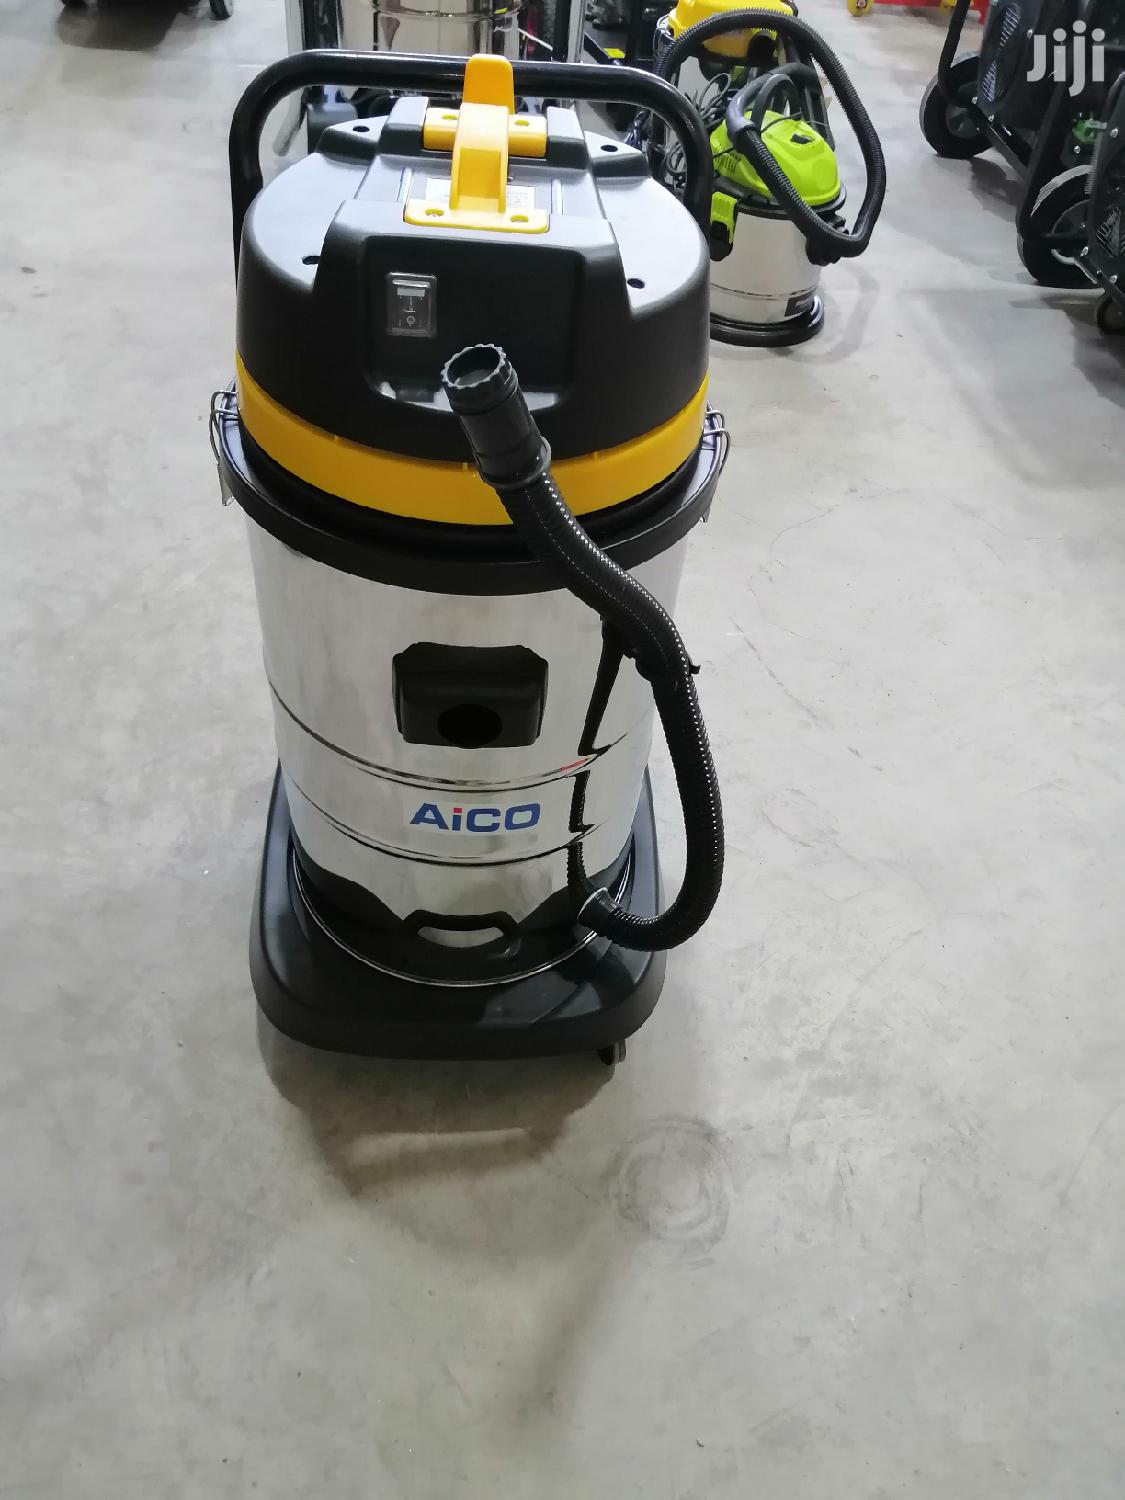 50litres Aico Wet And Dry Vacuum Cleaner | Home Appliances for sale in Nairobi Central, Nairobi, Kenya